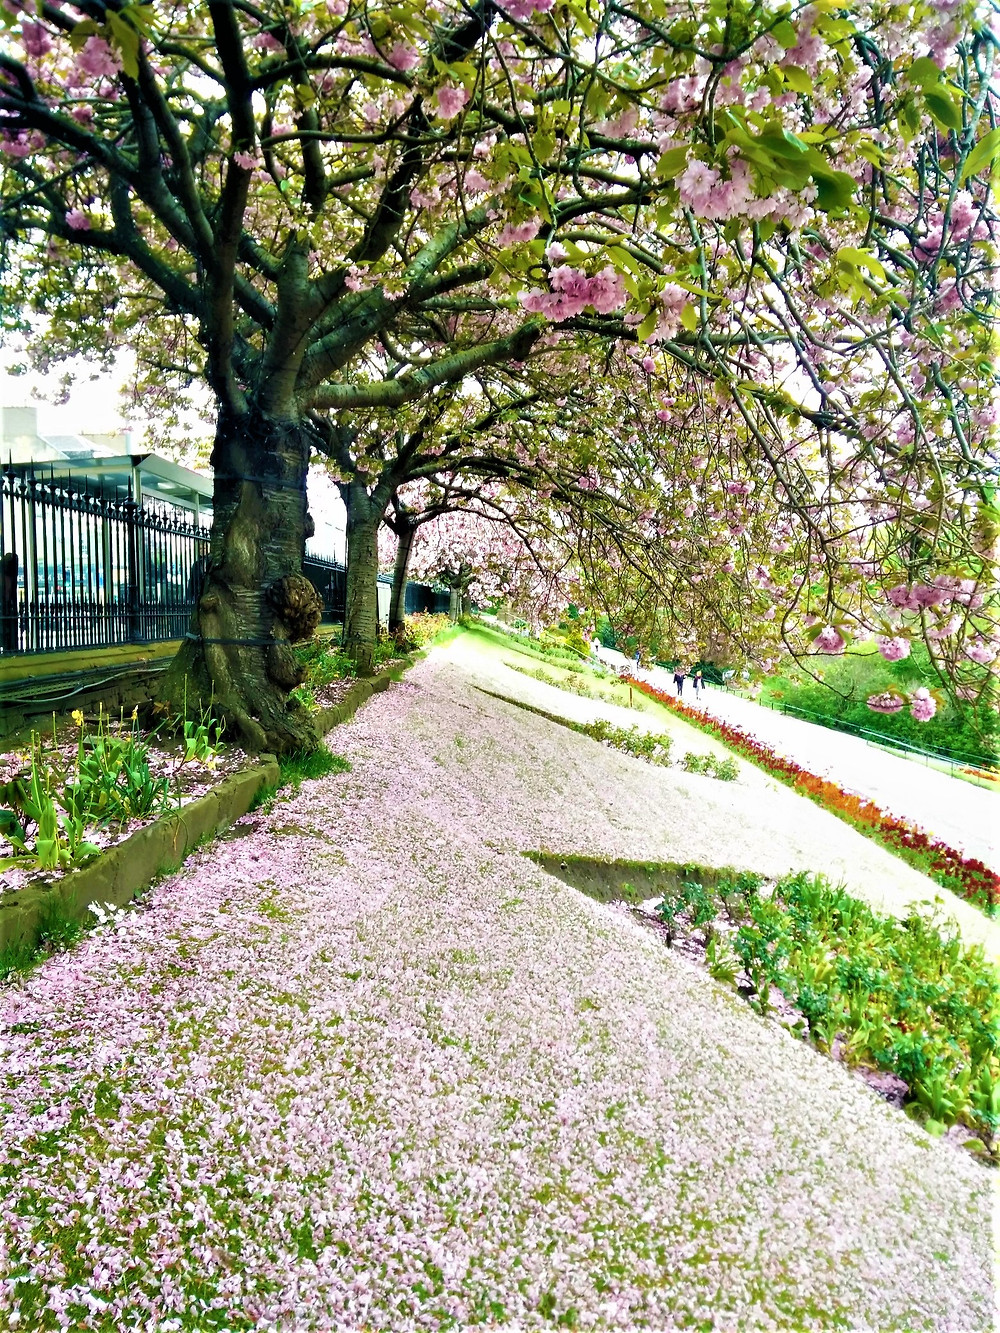 The pastel pink cherry flowers covering the embankment below.